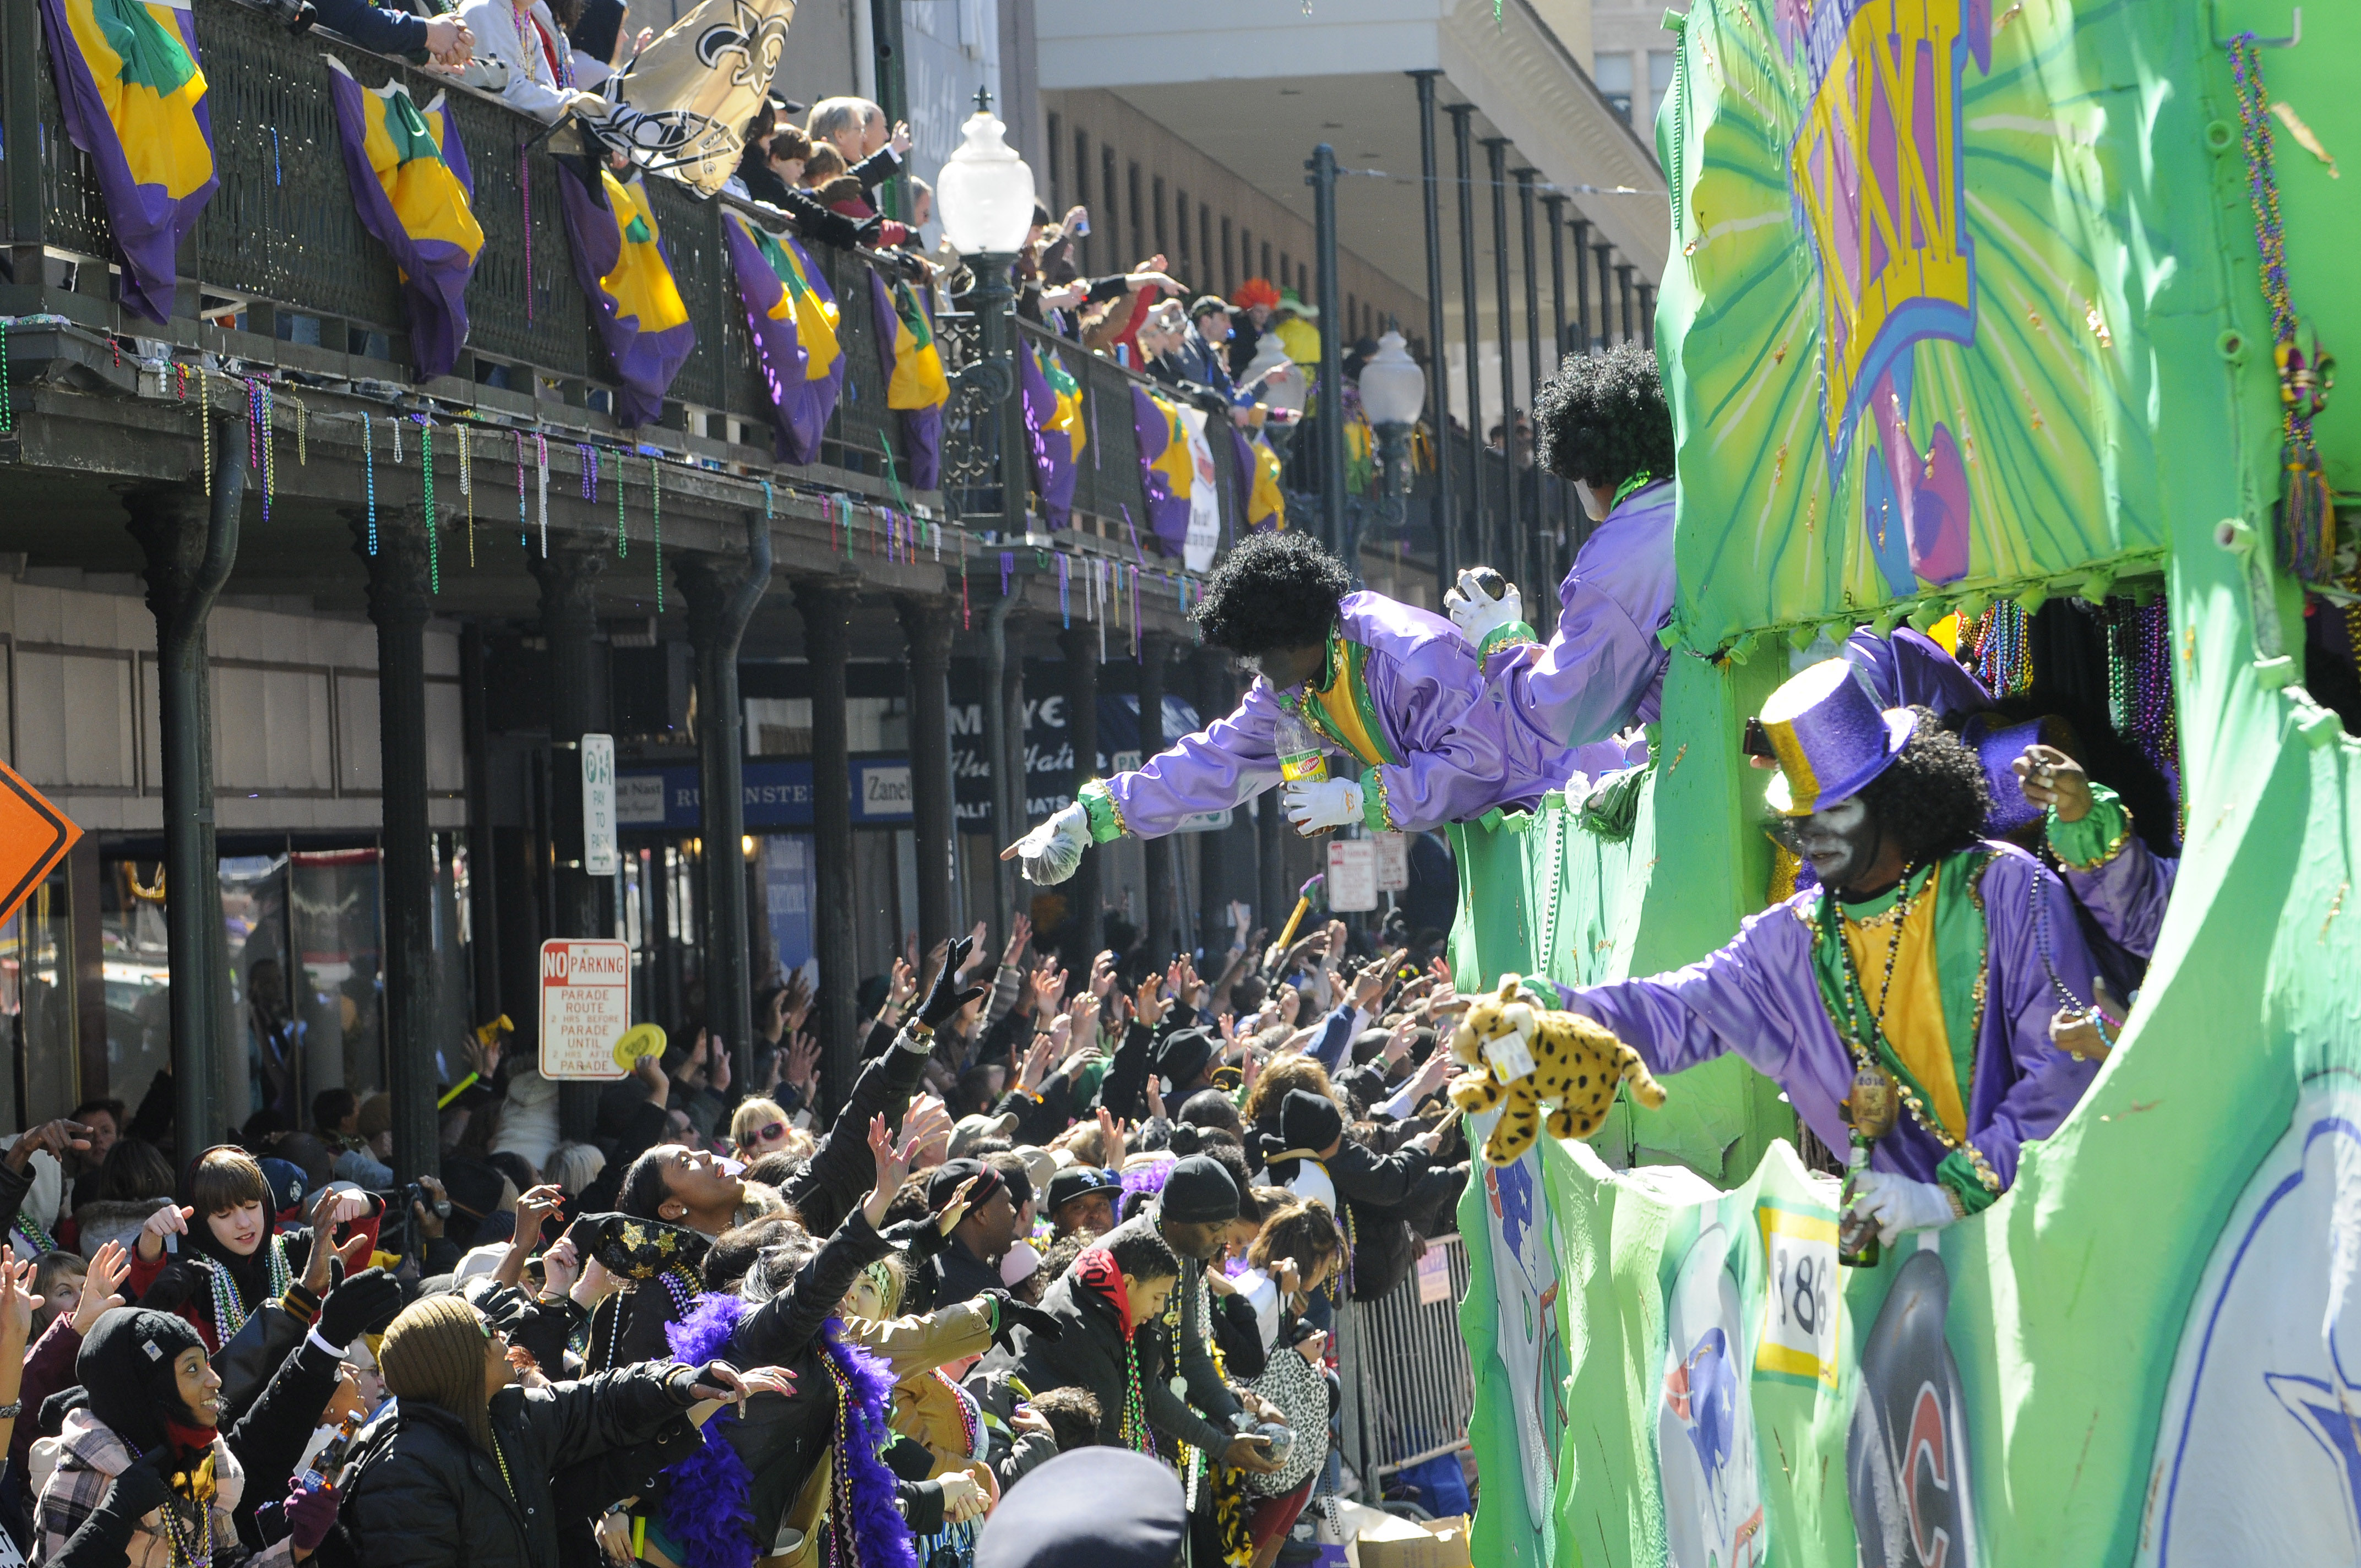 The Must Have Mardi Gras Throws From Mardi Gras Parades In New Orleans